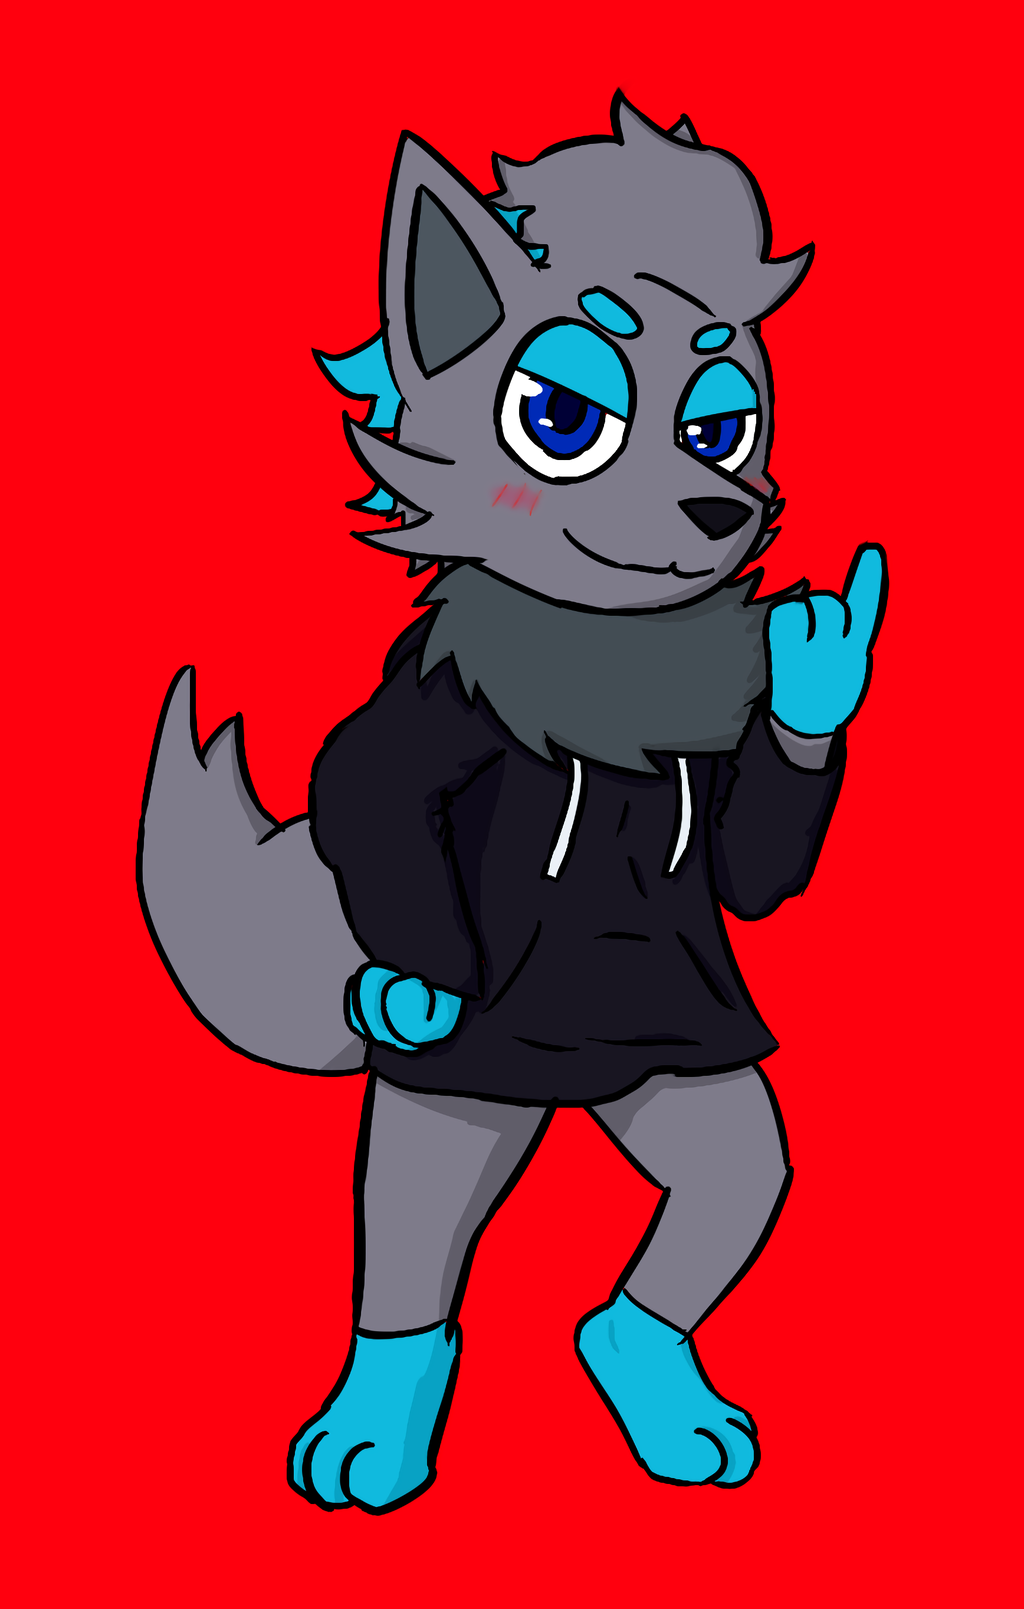 Most recent image: Dusty the Zorua